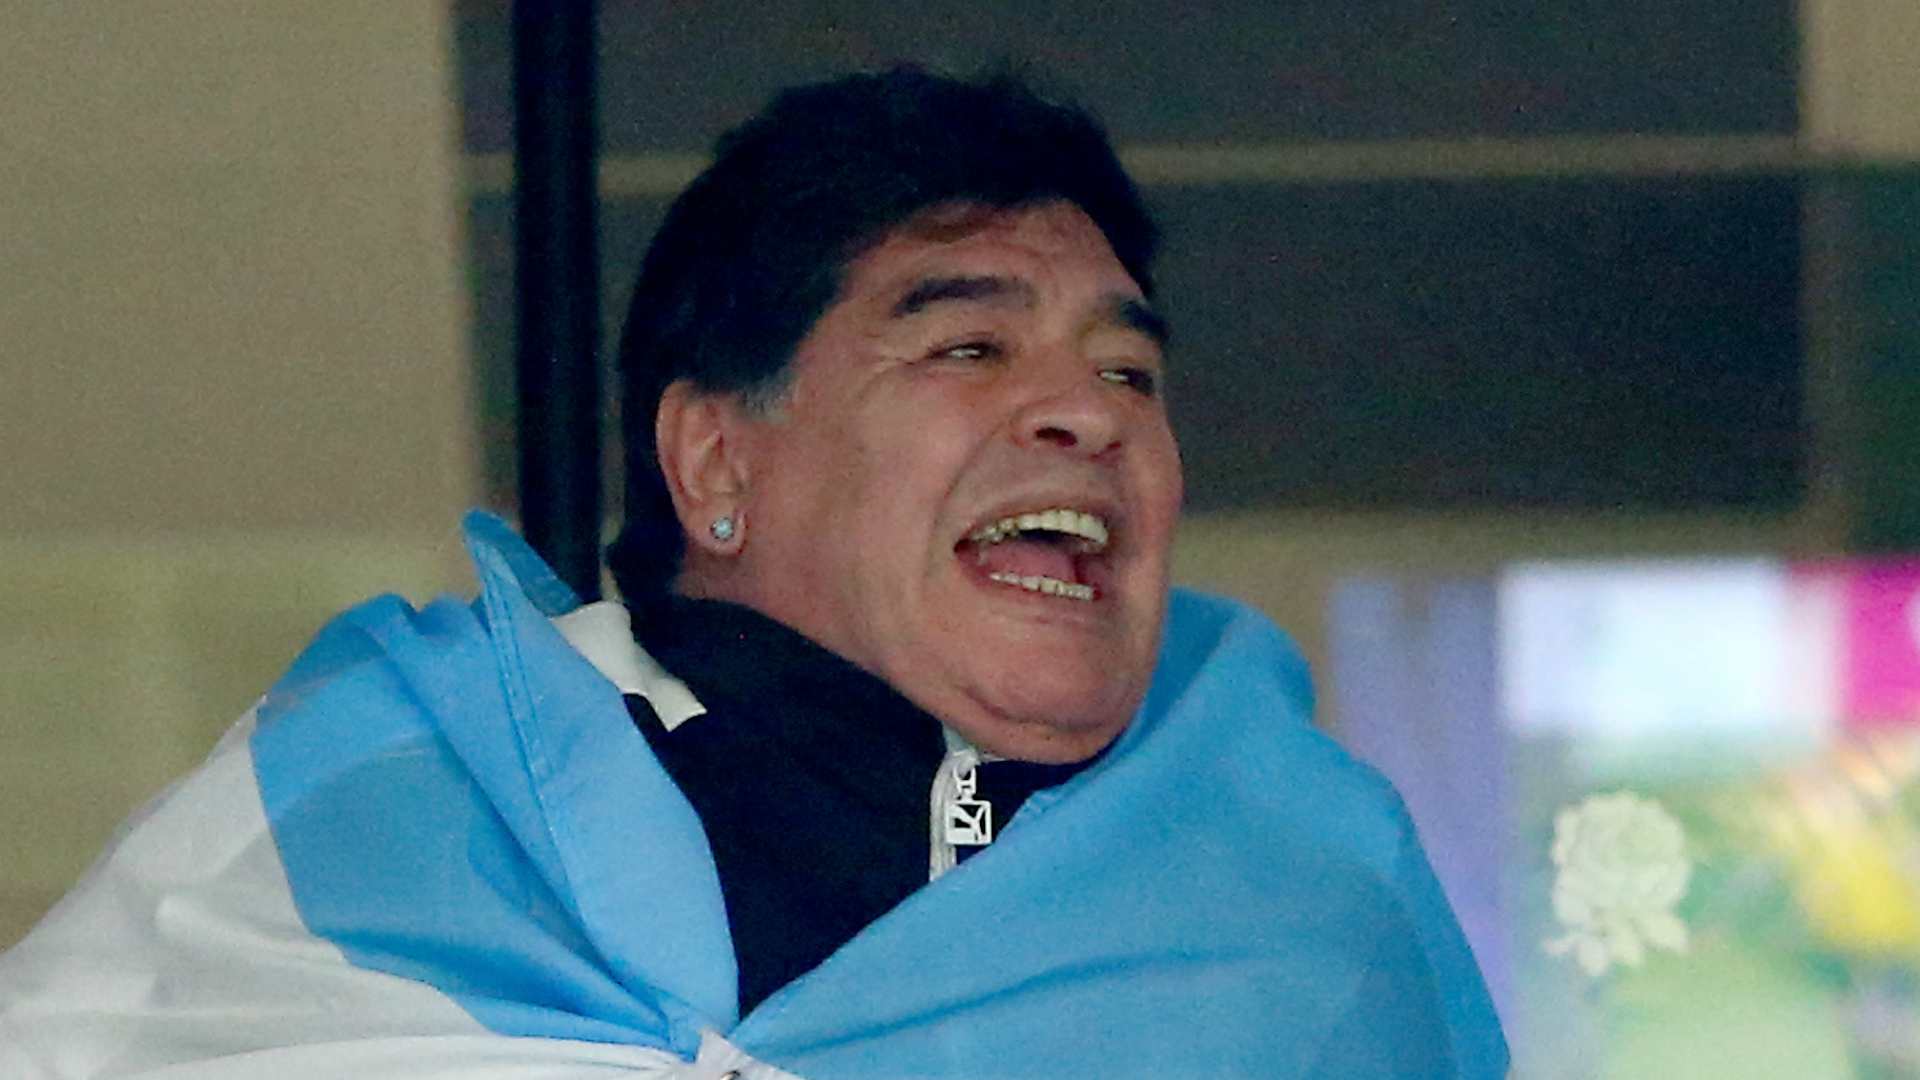 Diego Maradona dies: He showed everyone how to play for the jersey, says Pumas coach Ledesma